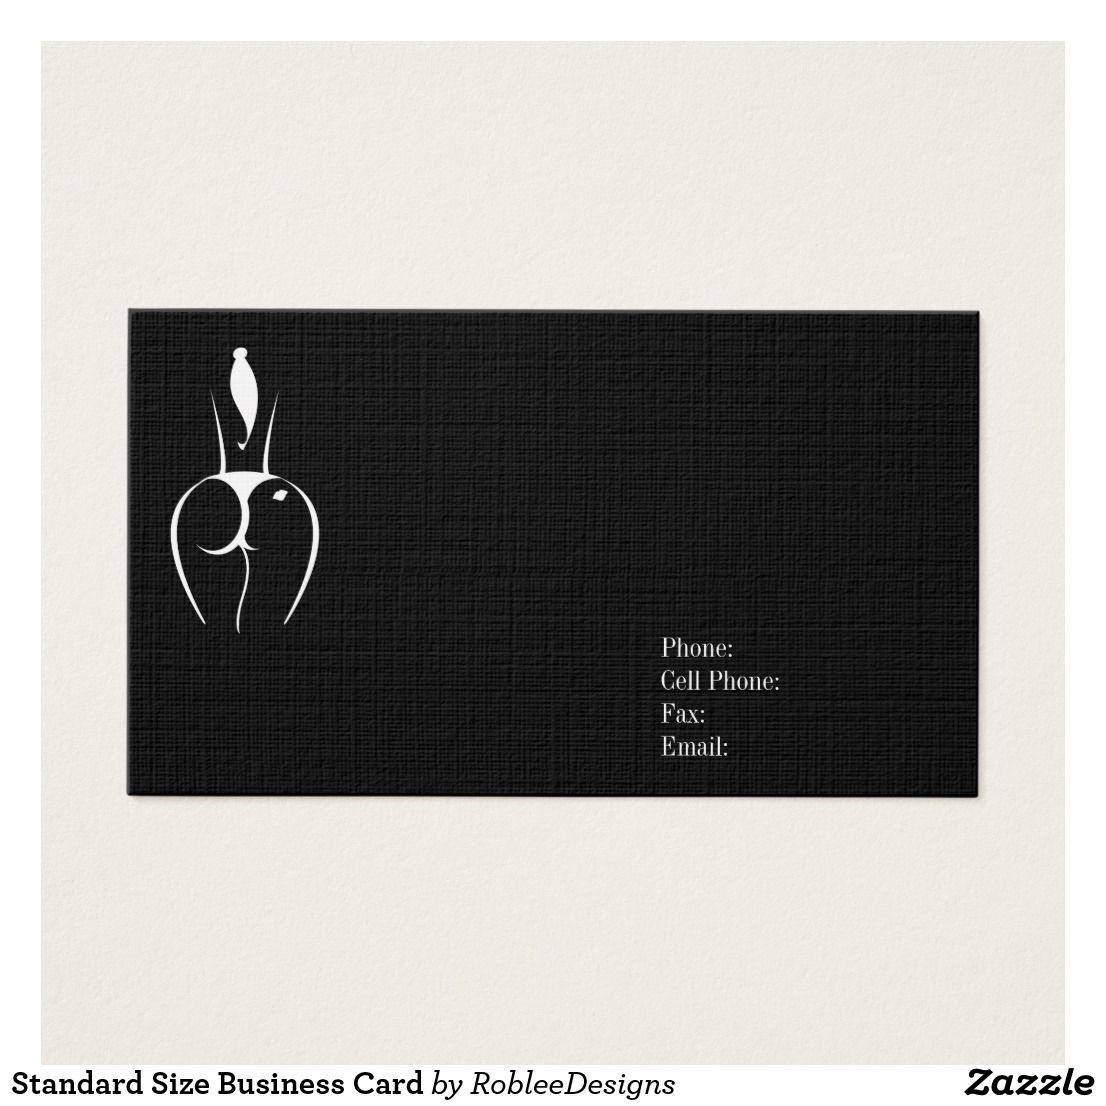 Standard size business card business card logo clubs standard size business card business card logo clubs businessman reheart Image collections